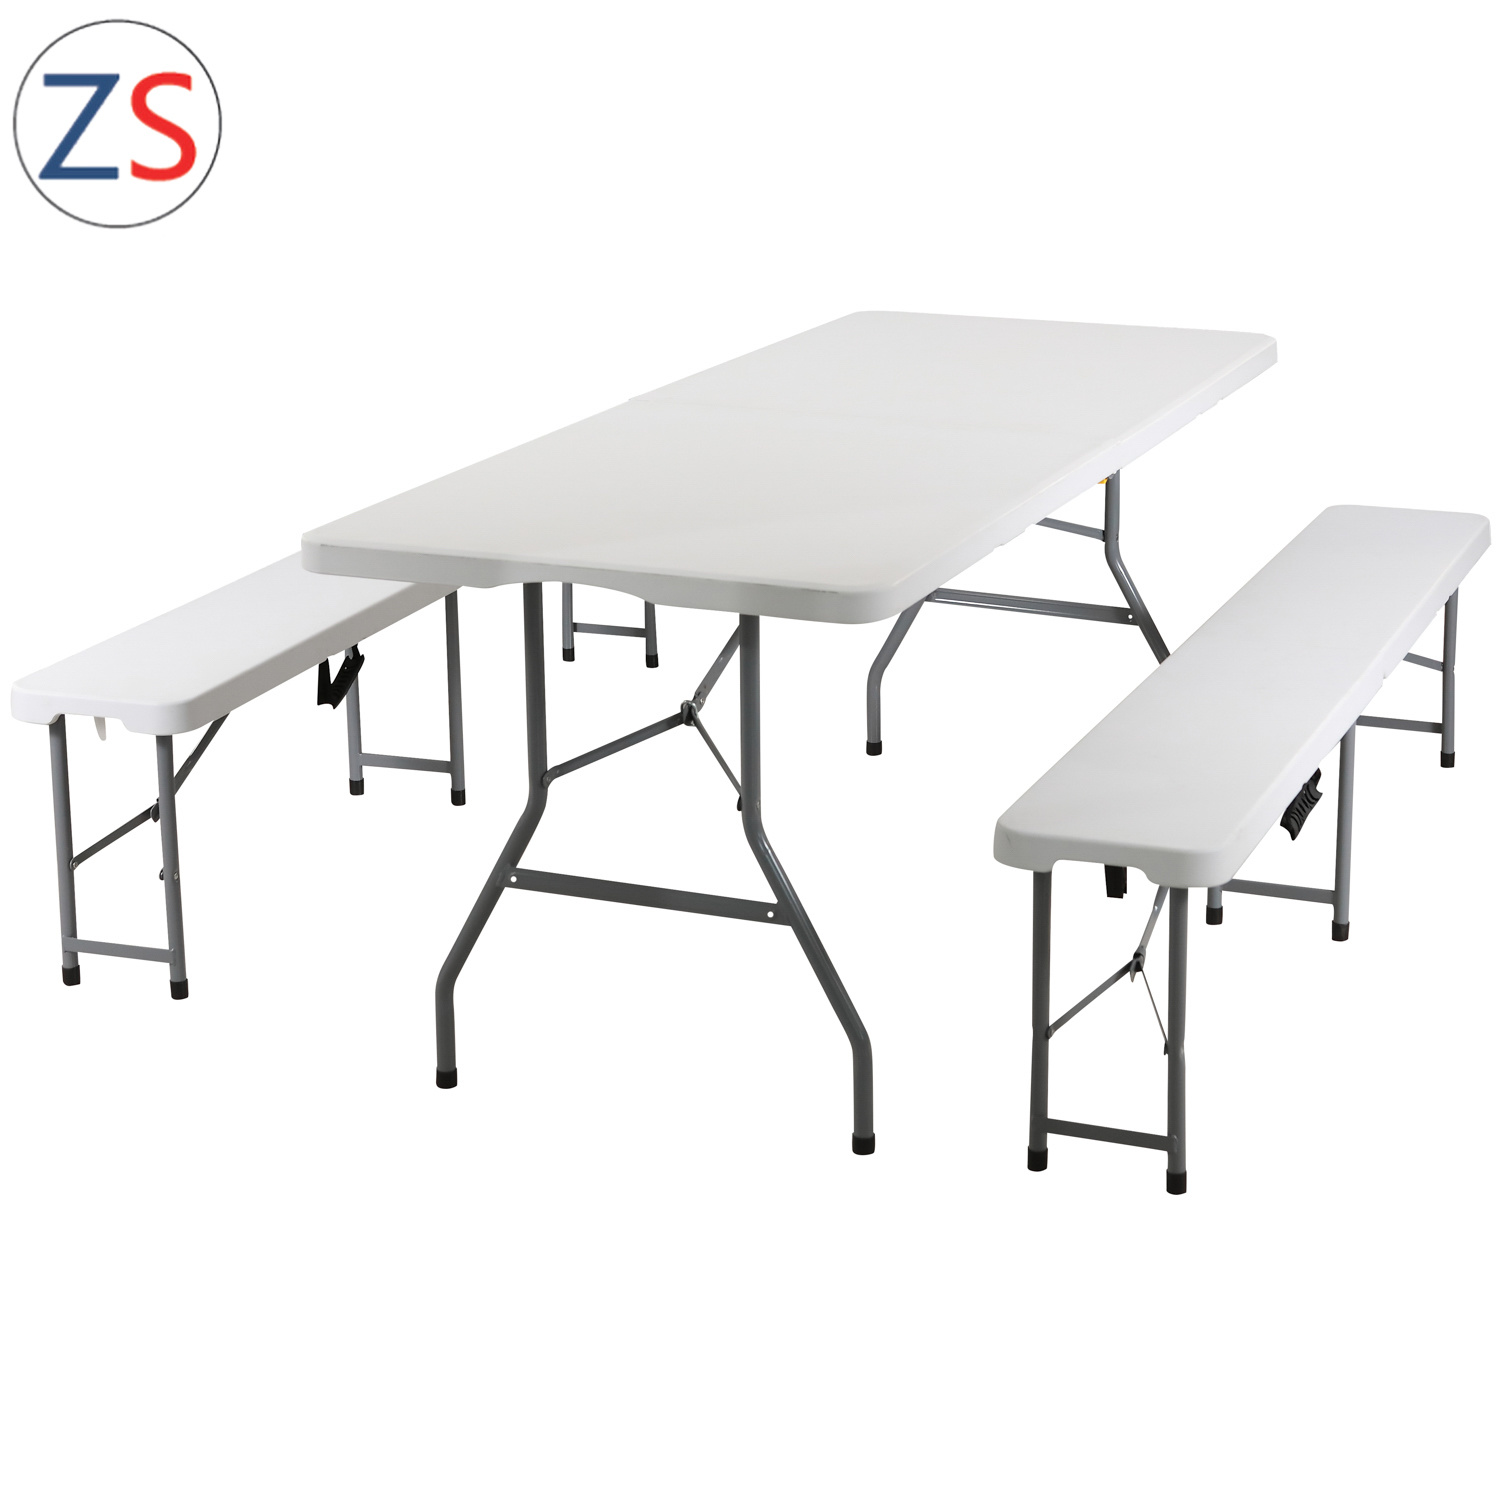 - China Hot! Event Rental Outdoor 6FT Plastic Folding In Half Table